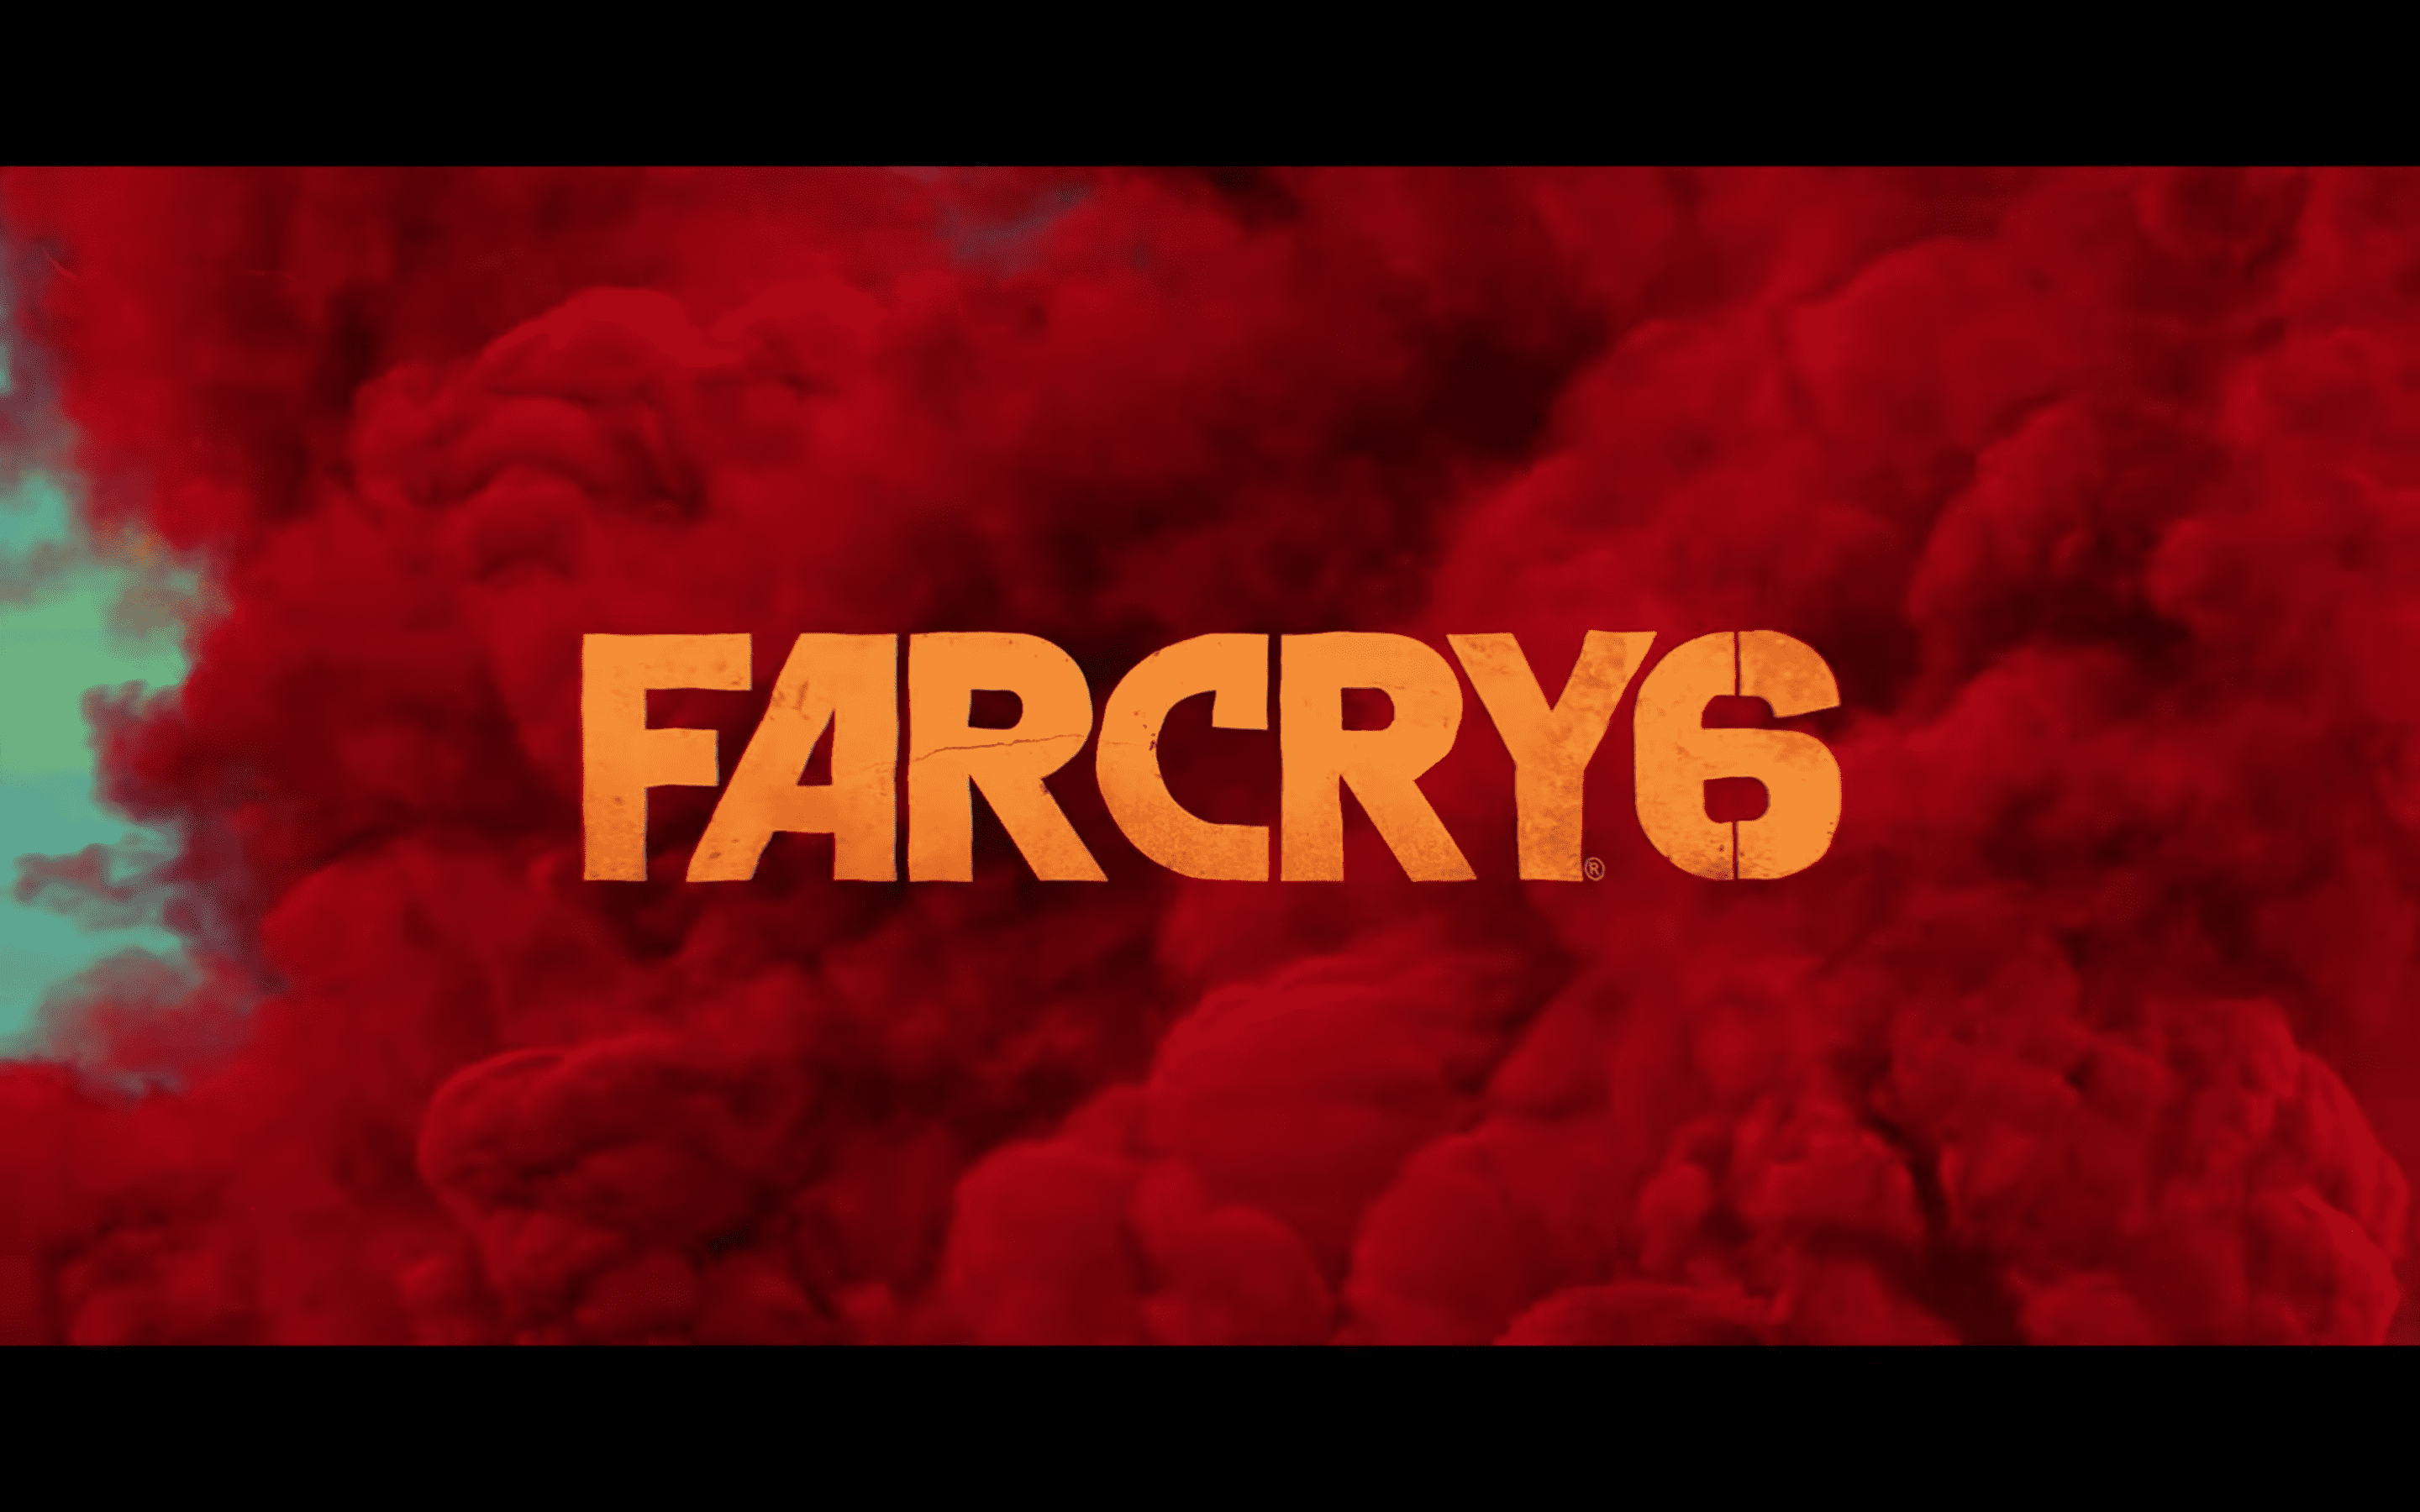 Far Cry 6 Beta Email Is Confirmed As A Scam By Ubisoft.